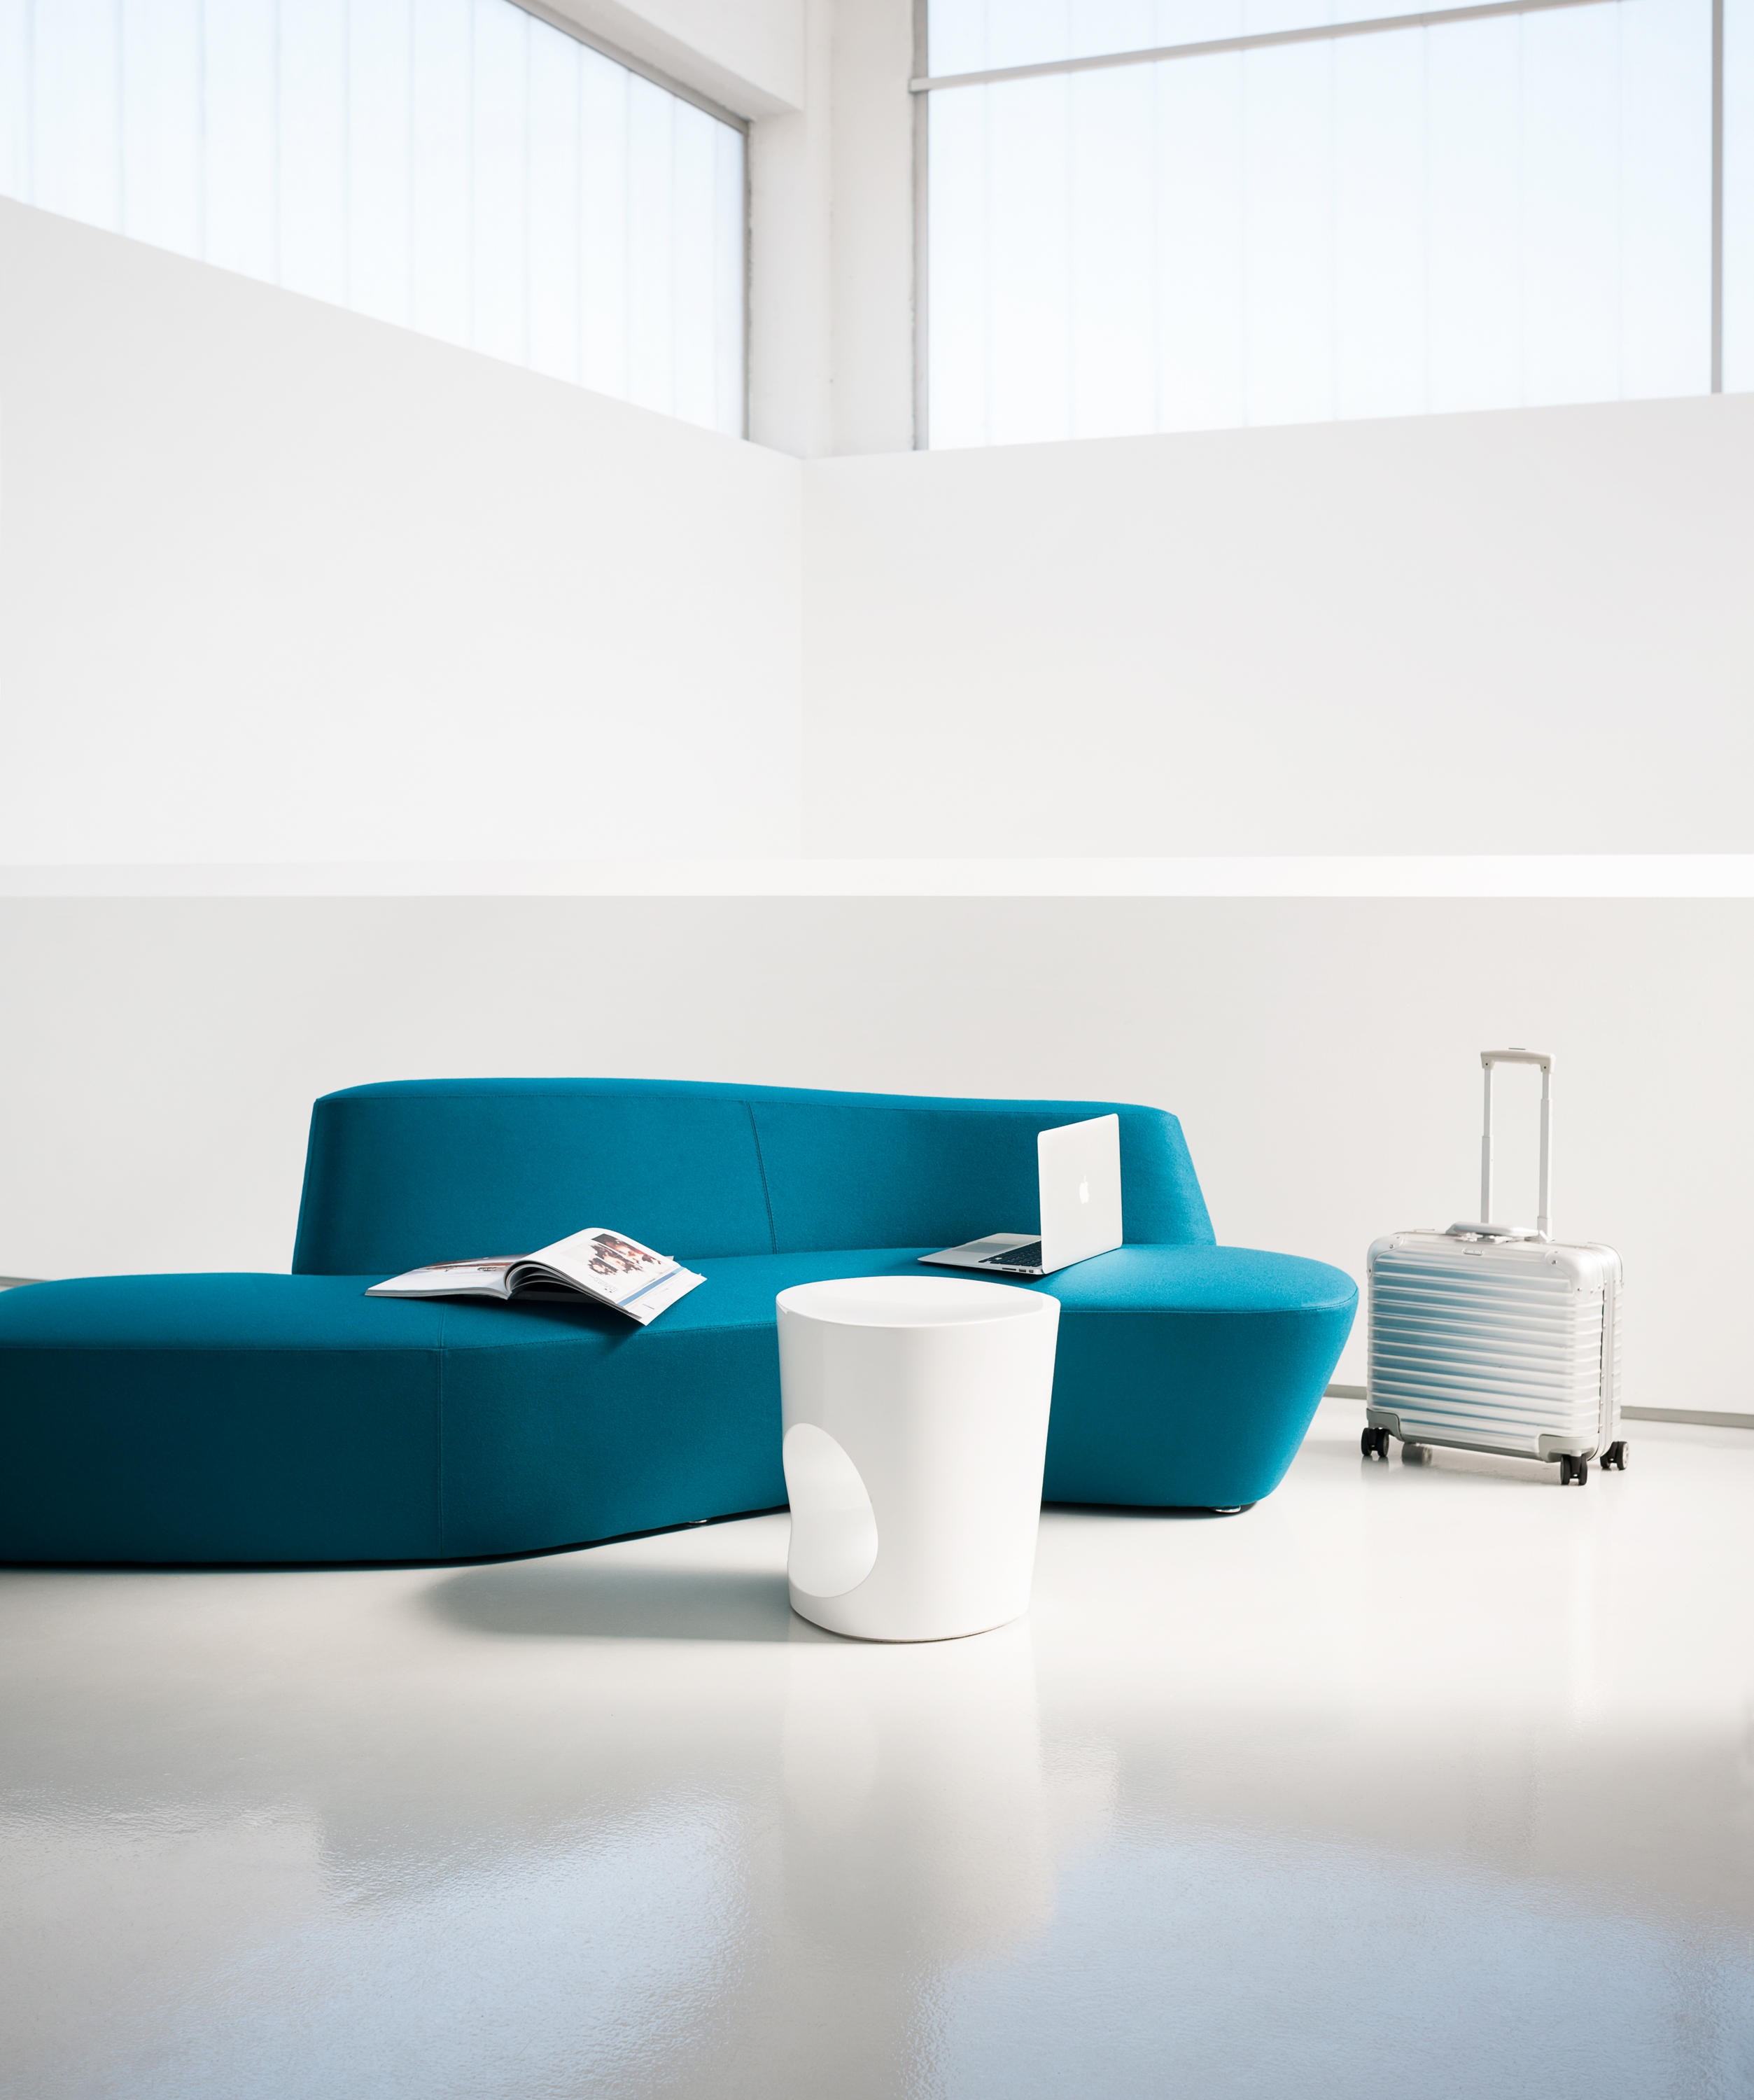 Designer Sofa Berlin Polar - Sofas From Tacchini Italia | Architonic